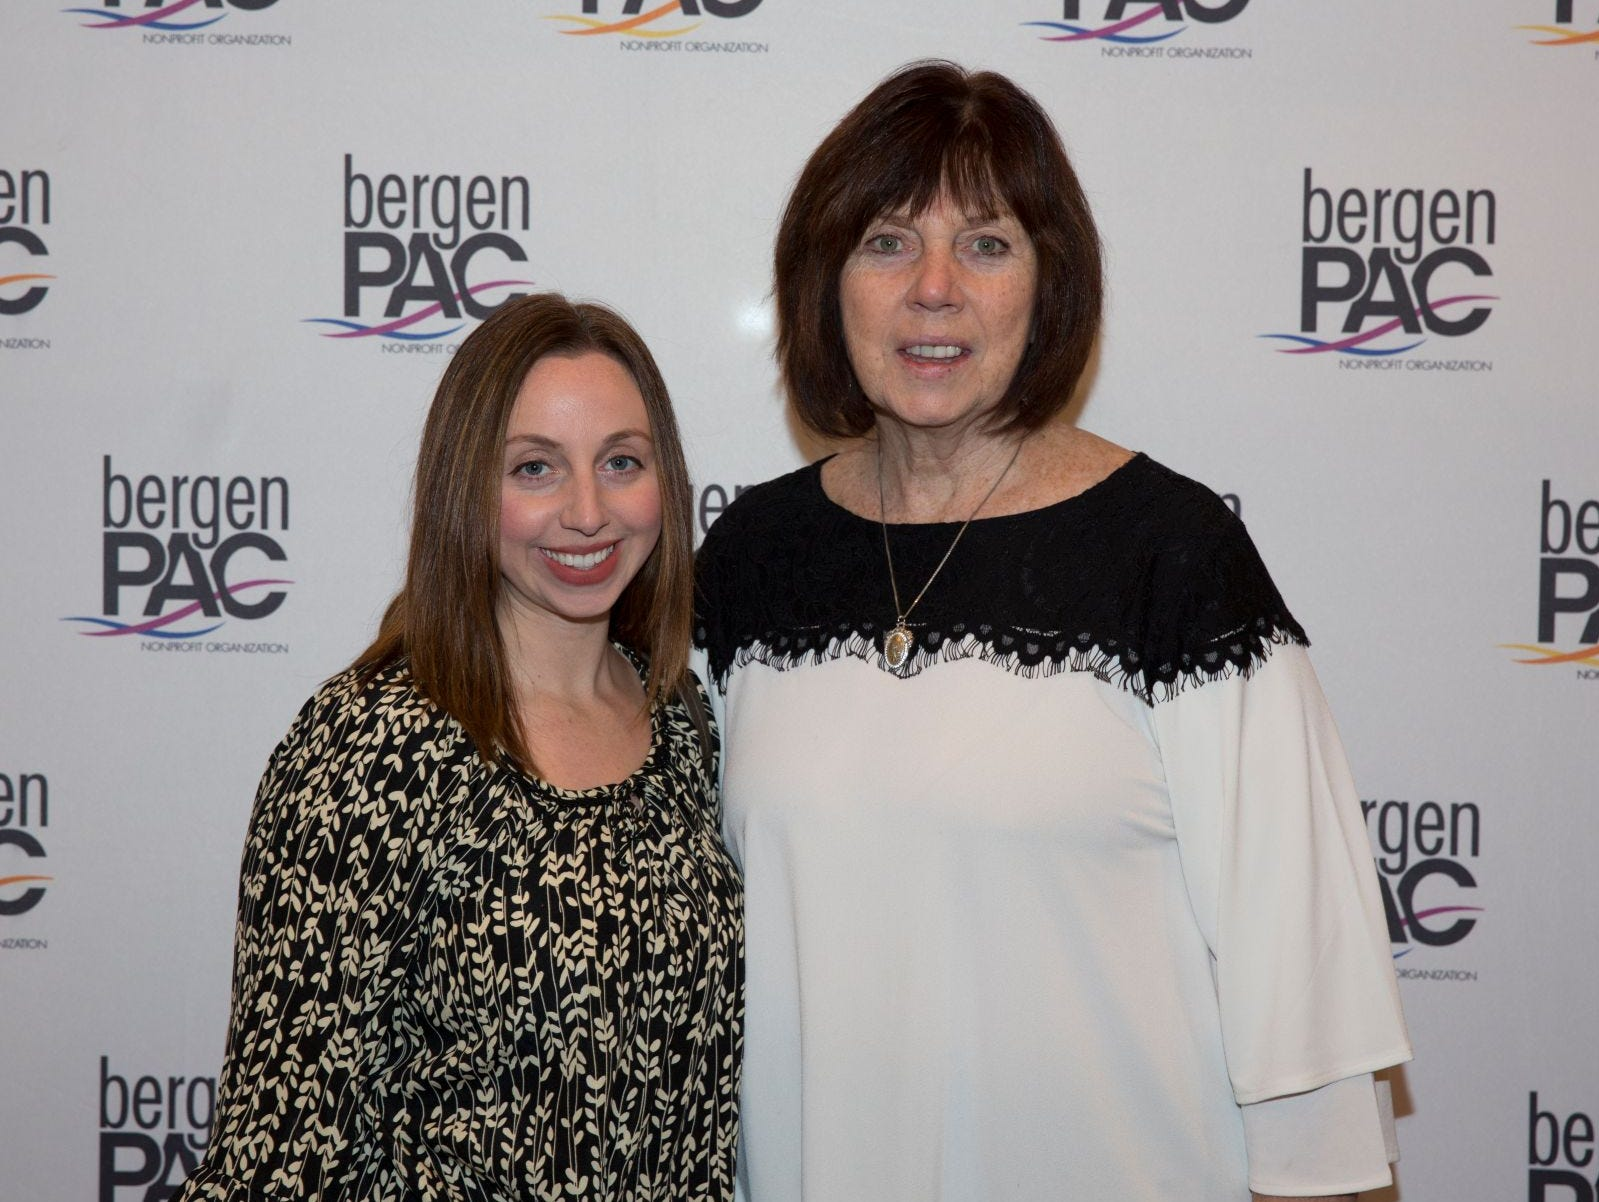 Regina Speilberg, Jessica Woodbridge. BergenPAC held its annual fall gala featuring John Fogerty in Englewood. This year's honoree was Fernando Garip, from Wilmington Trust and M&T Bank. 11/08/2018